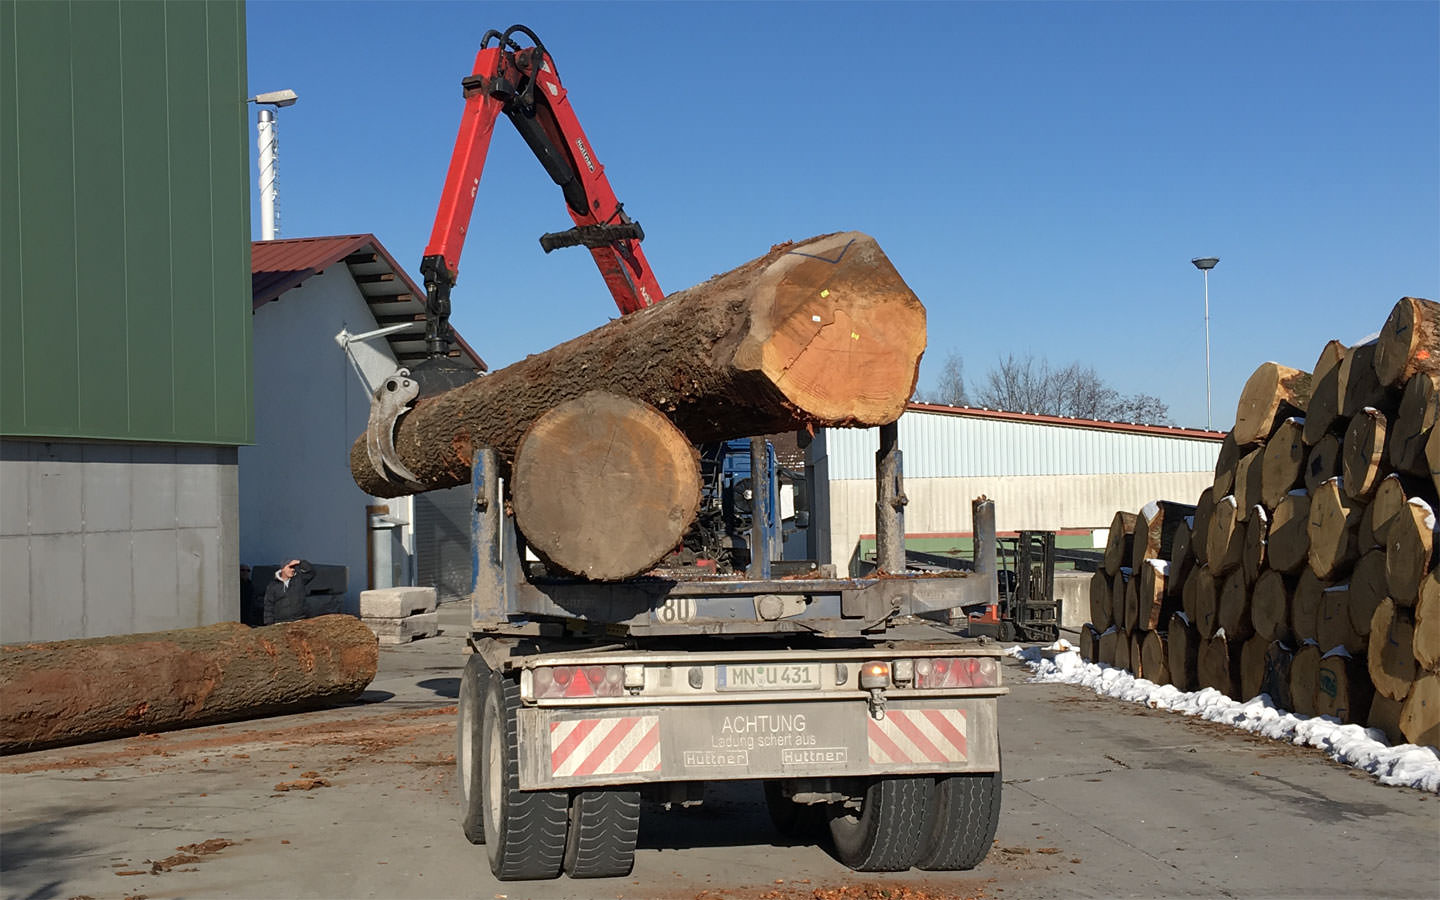 Unloading of a wood giant